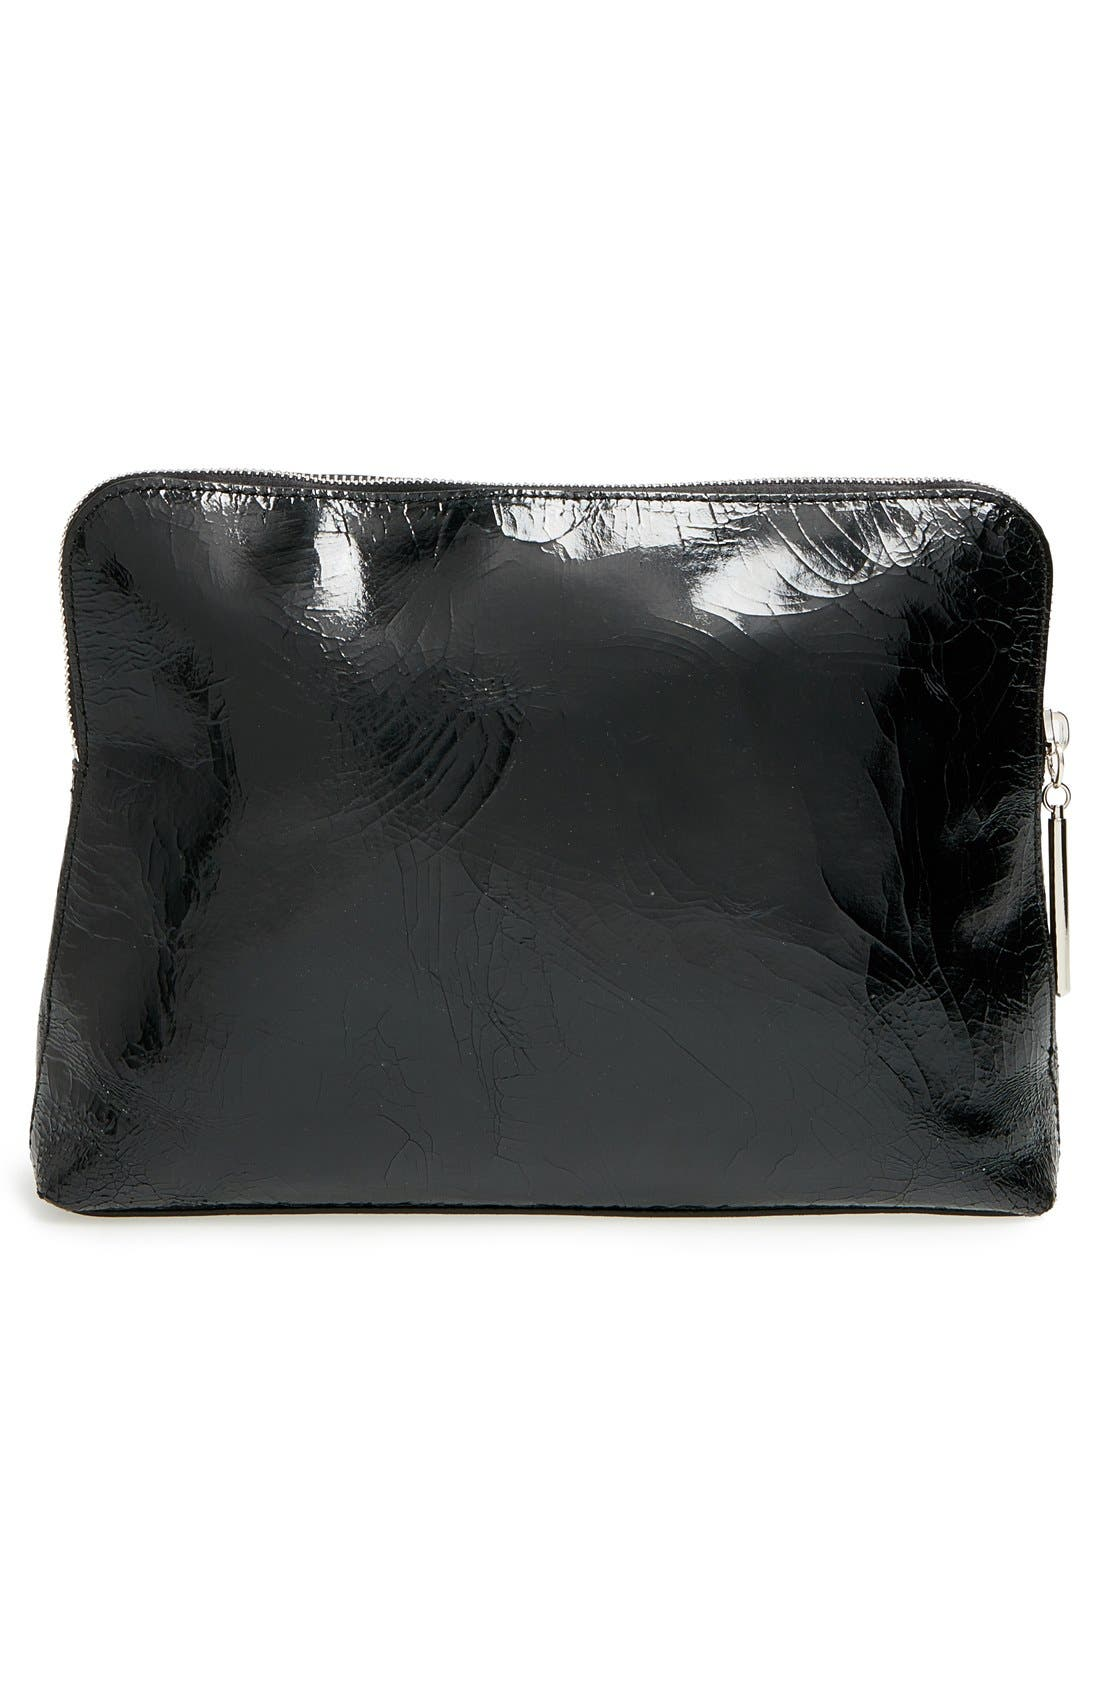 'Medium 31 Minute' Metallic Leather Pouch,                             Alternate thumbnail 4, color,                             400